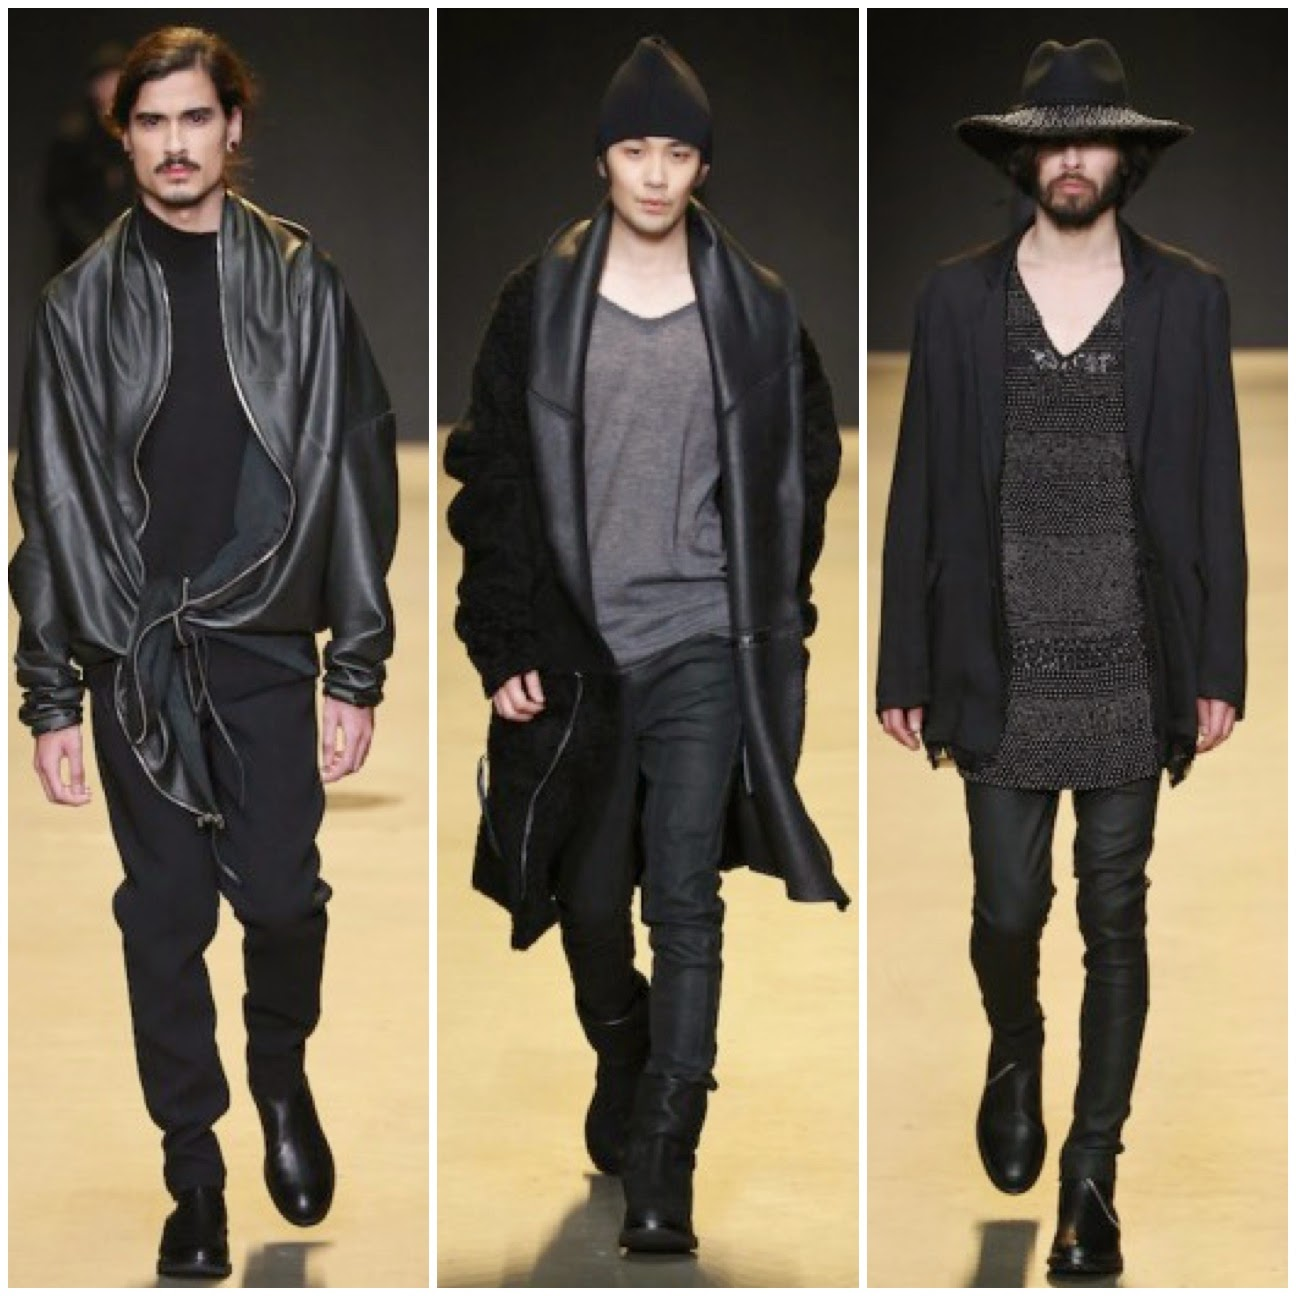 fall-winter 2015/2016 men